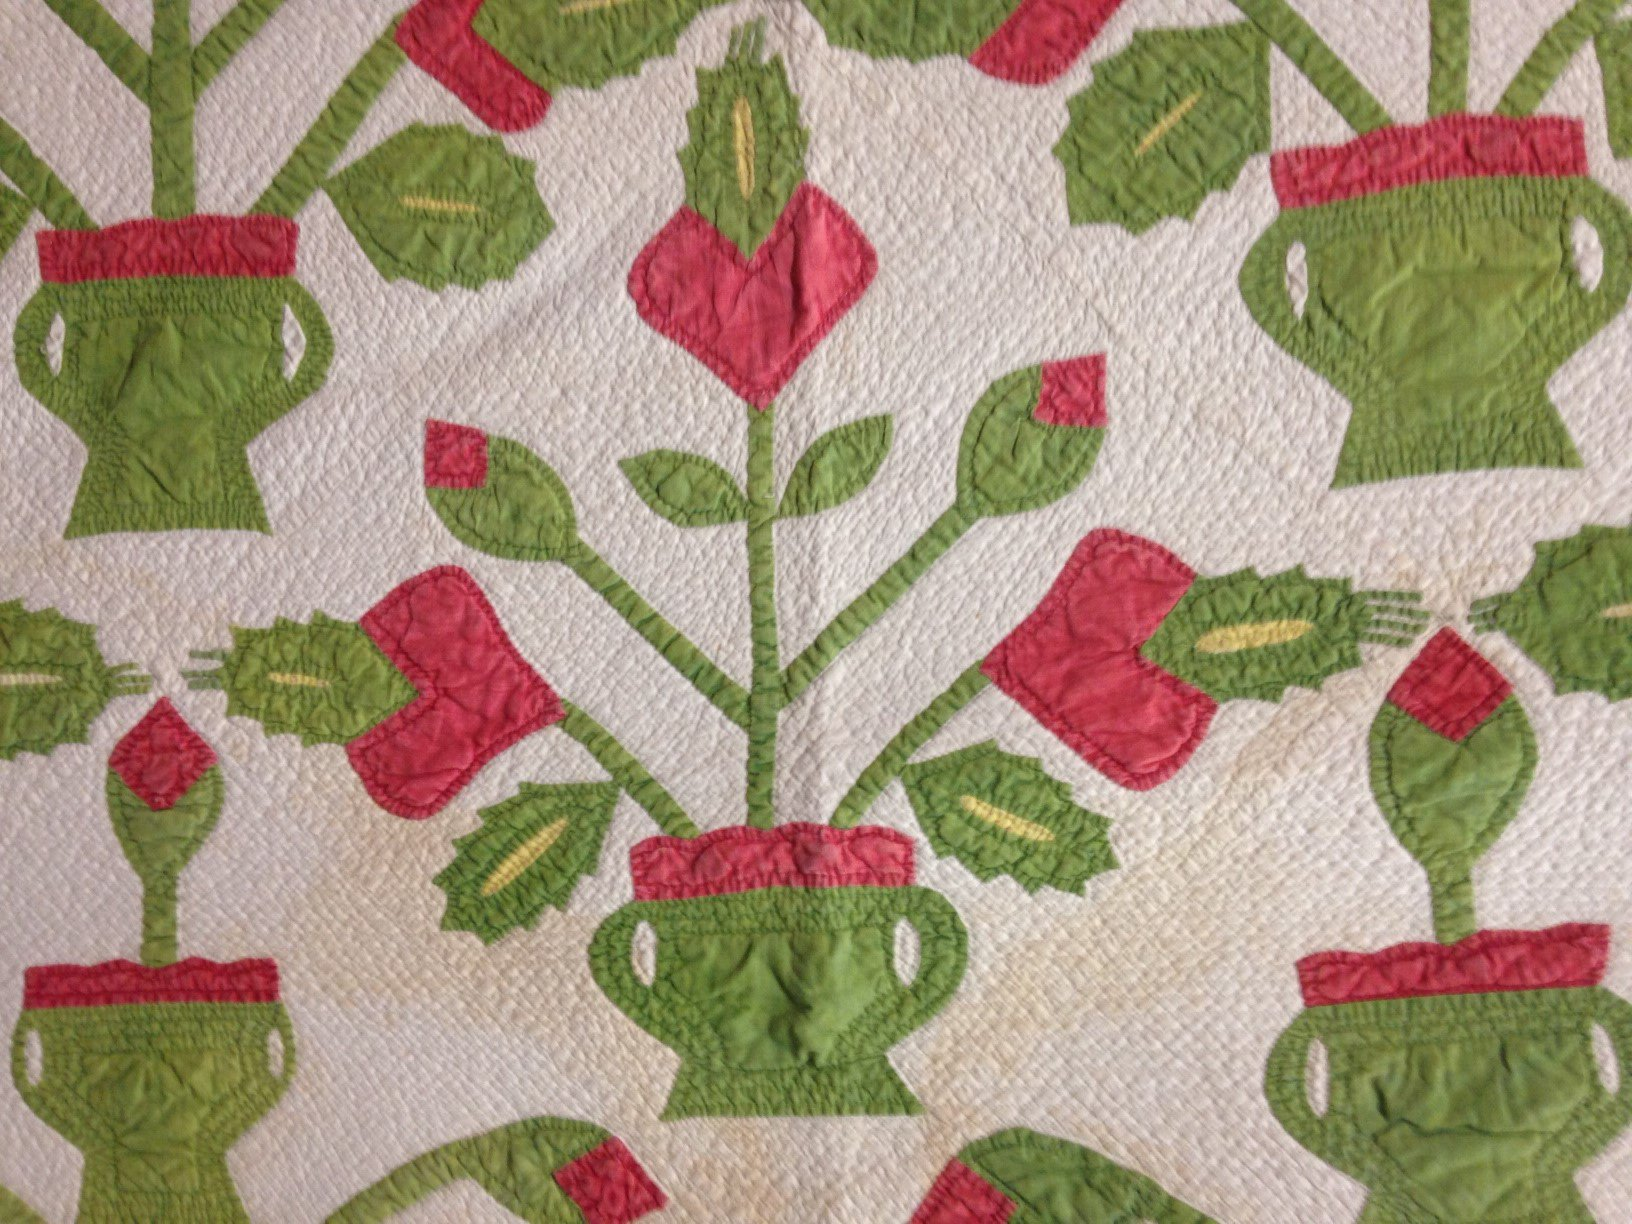 FLOWERS IN POTS ANTIQUE APPLIQUE QUILT